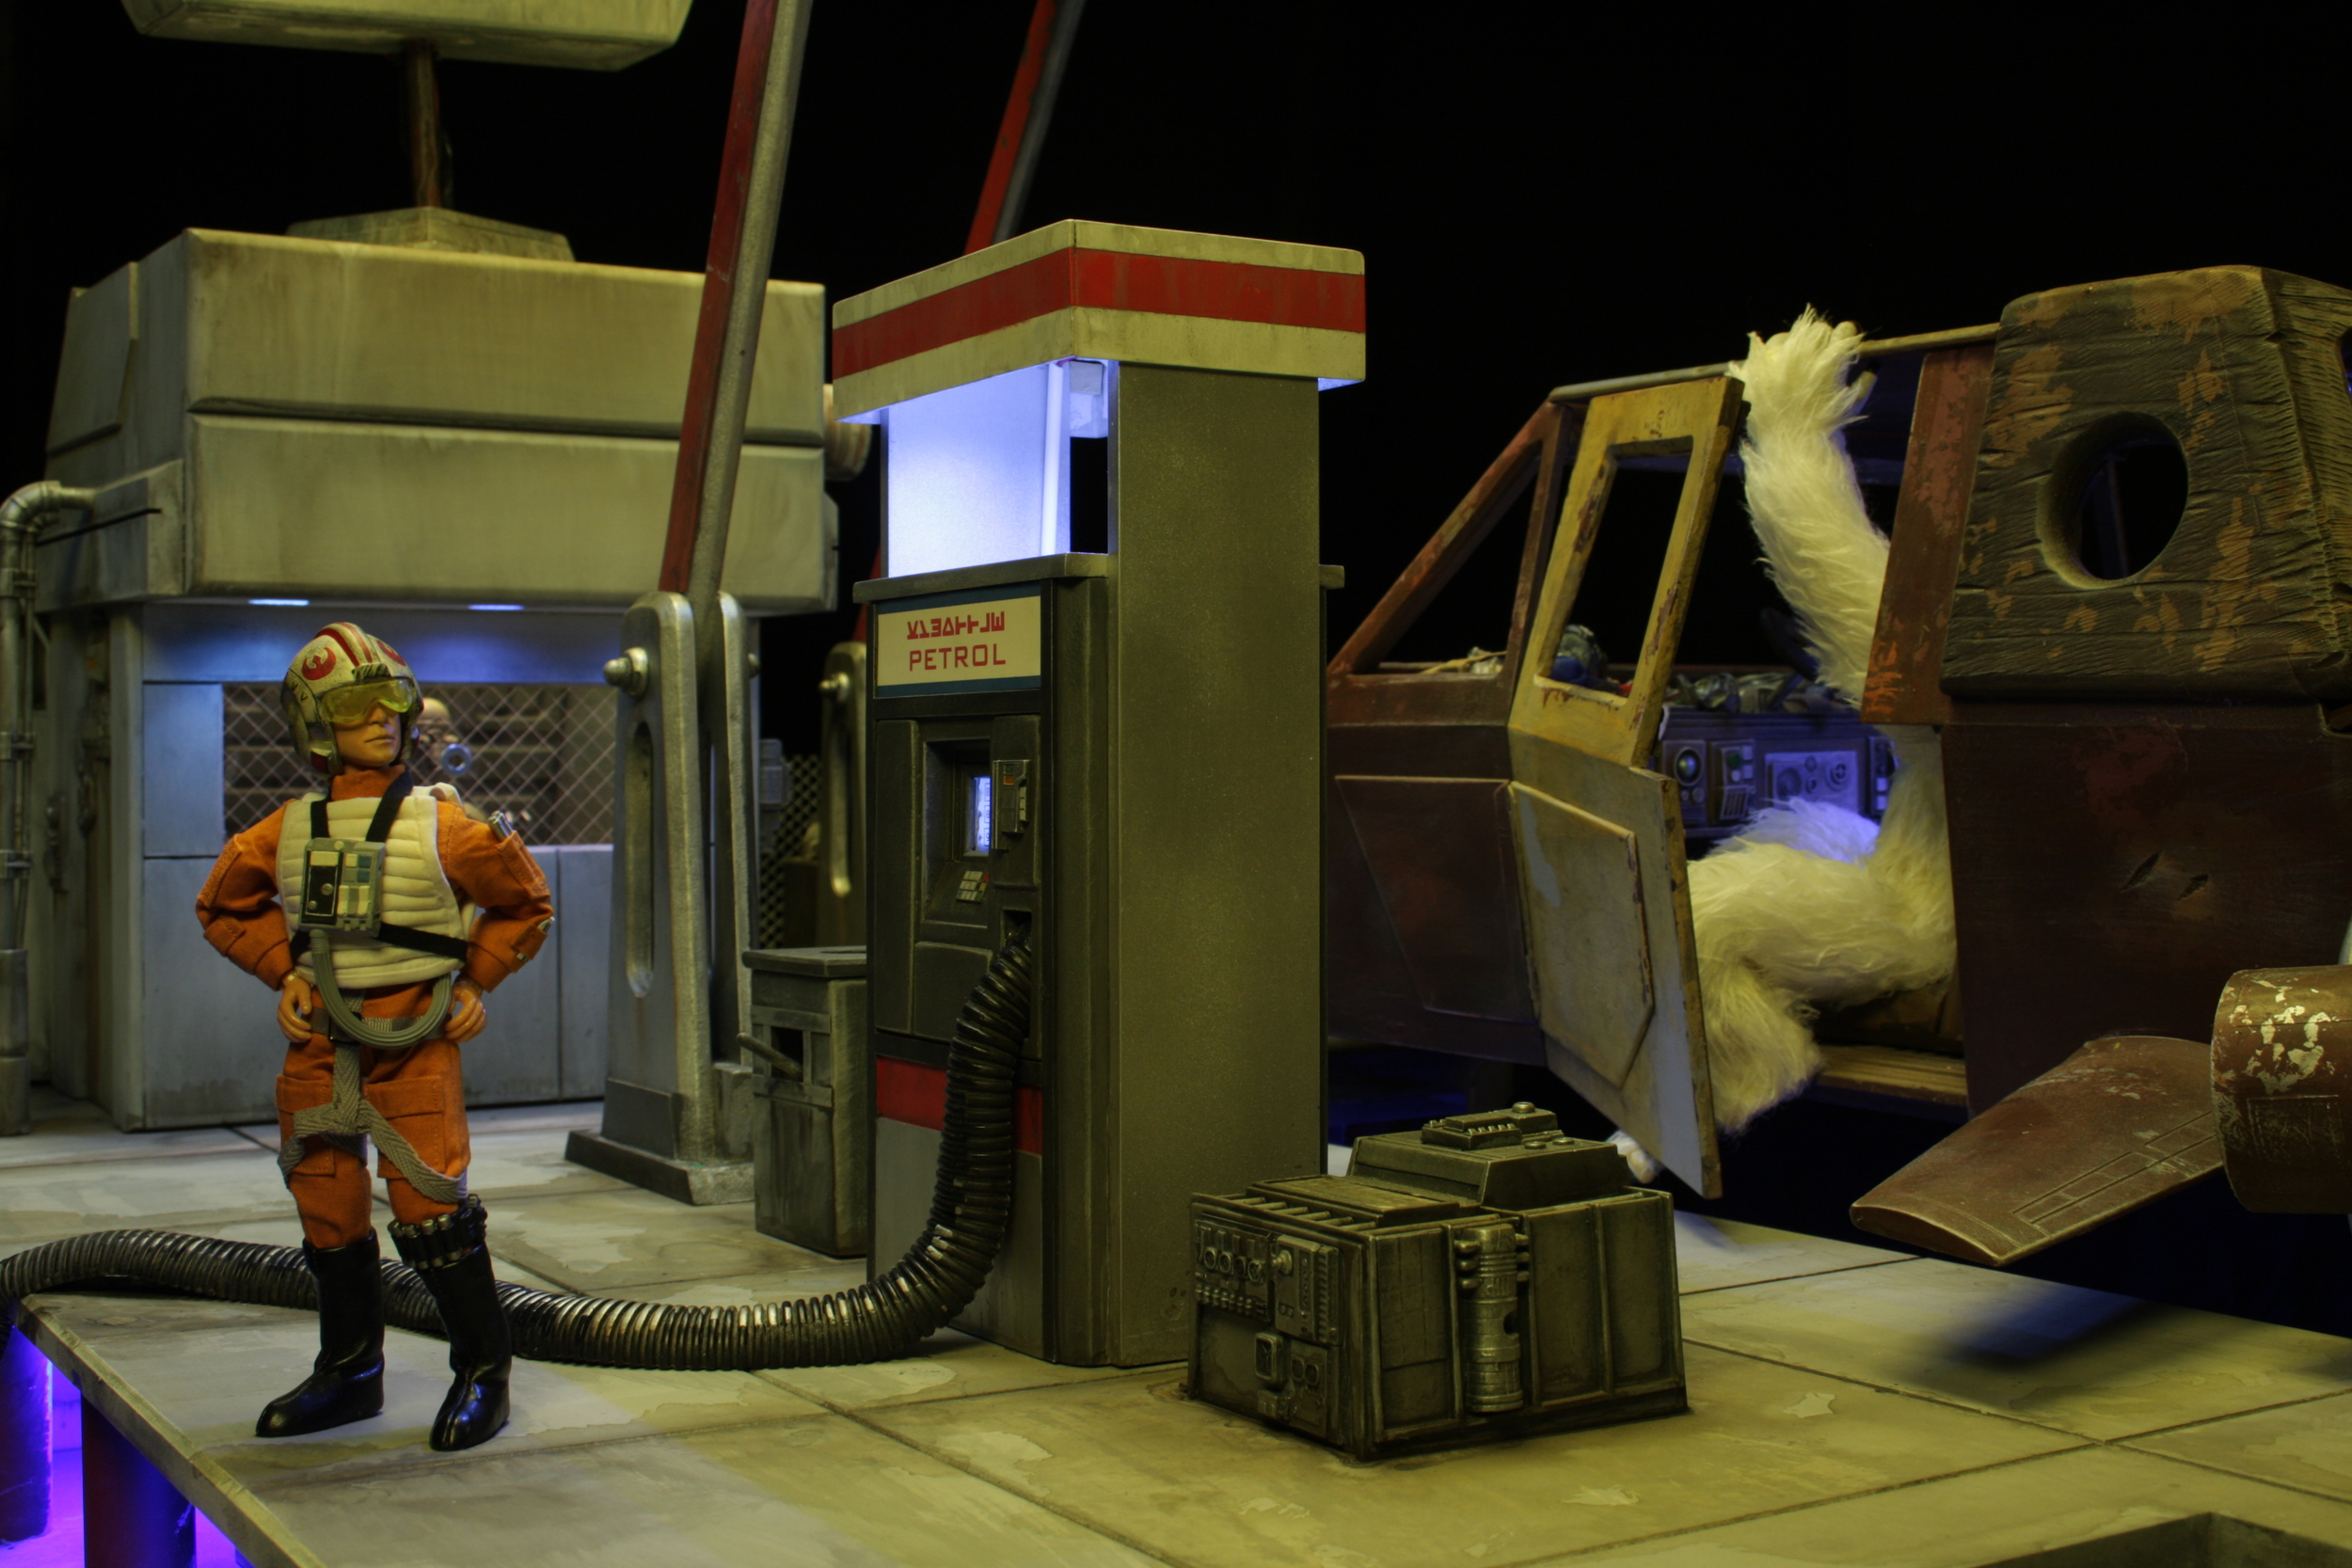 Robot Chicken Star Wars 2 Image 35.jpg